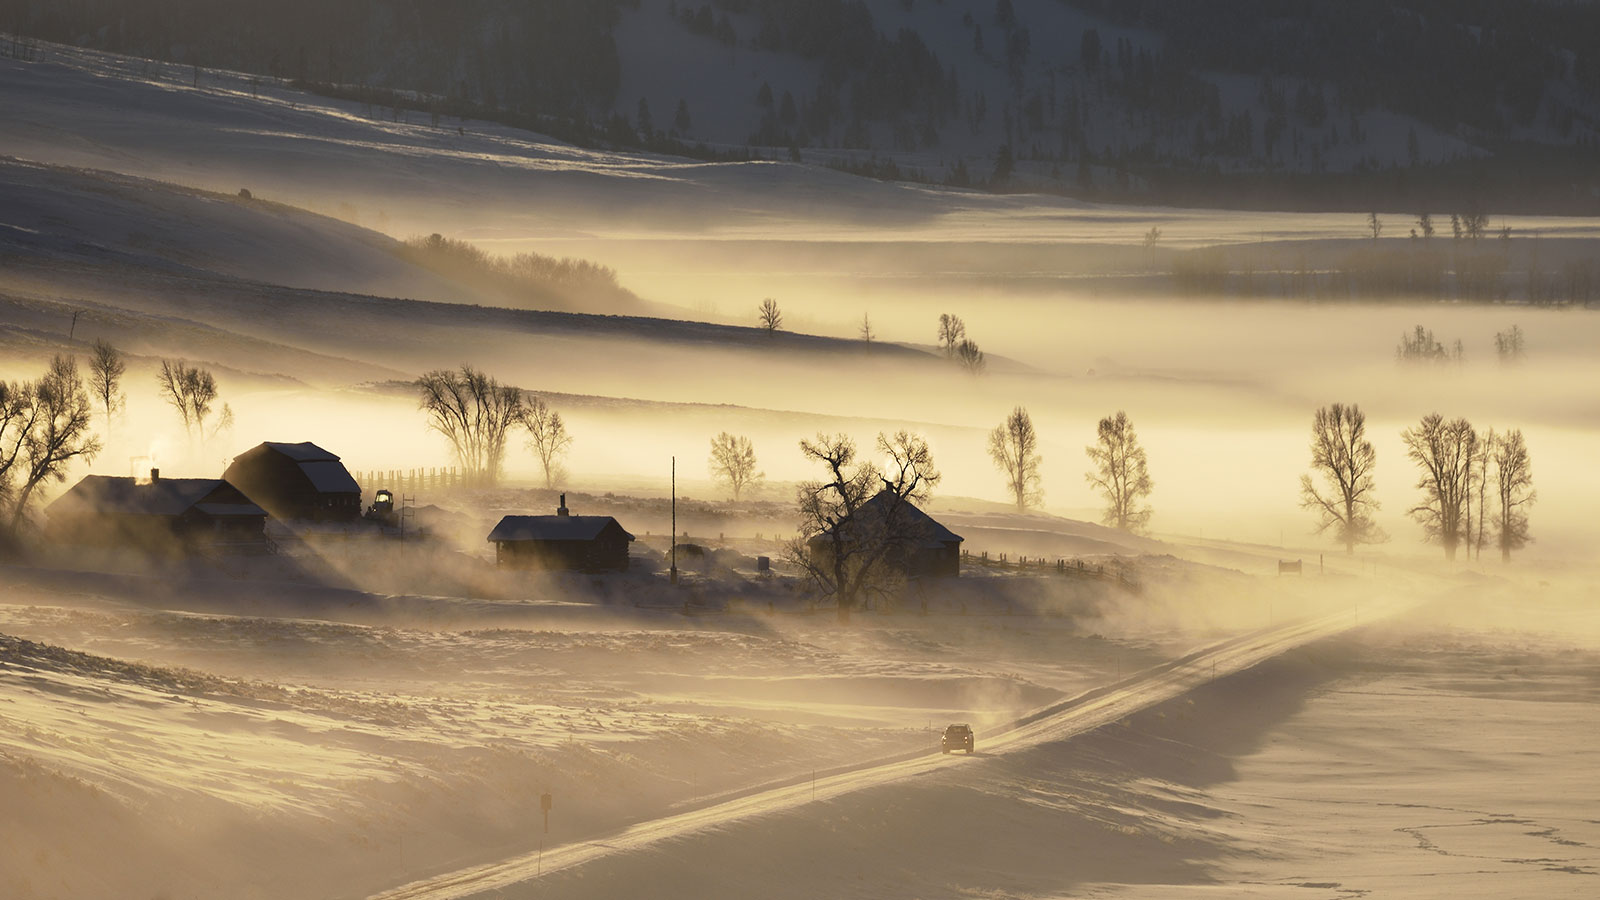 Wyoming road in blowing snow